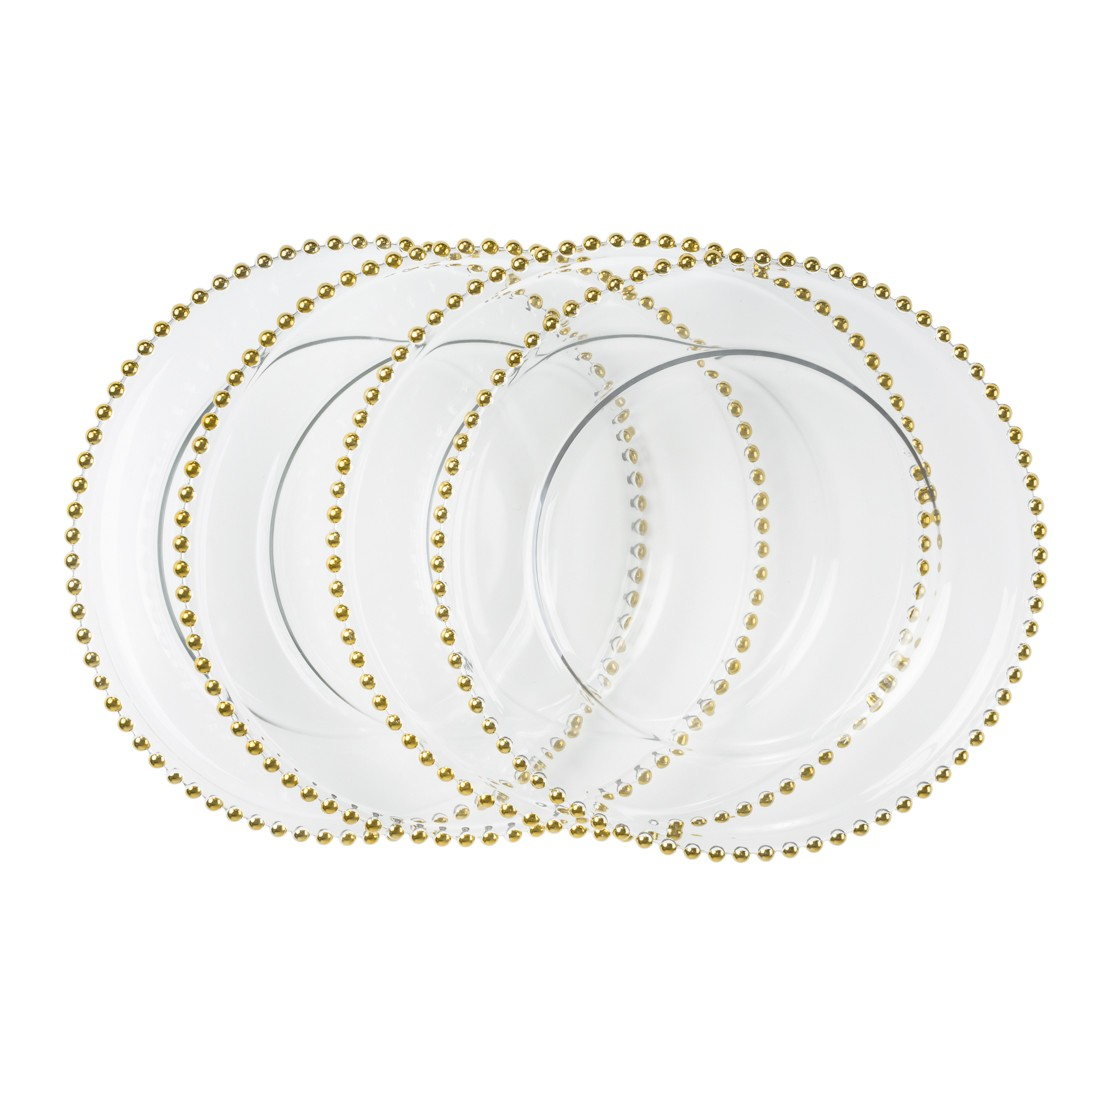 Silver Beaded Chargers The Jay Companies 13 Quot Round Gold Beaded Glass Charger Plate Silver